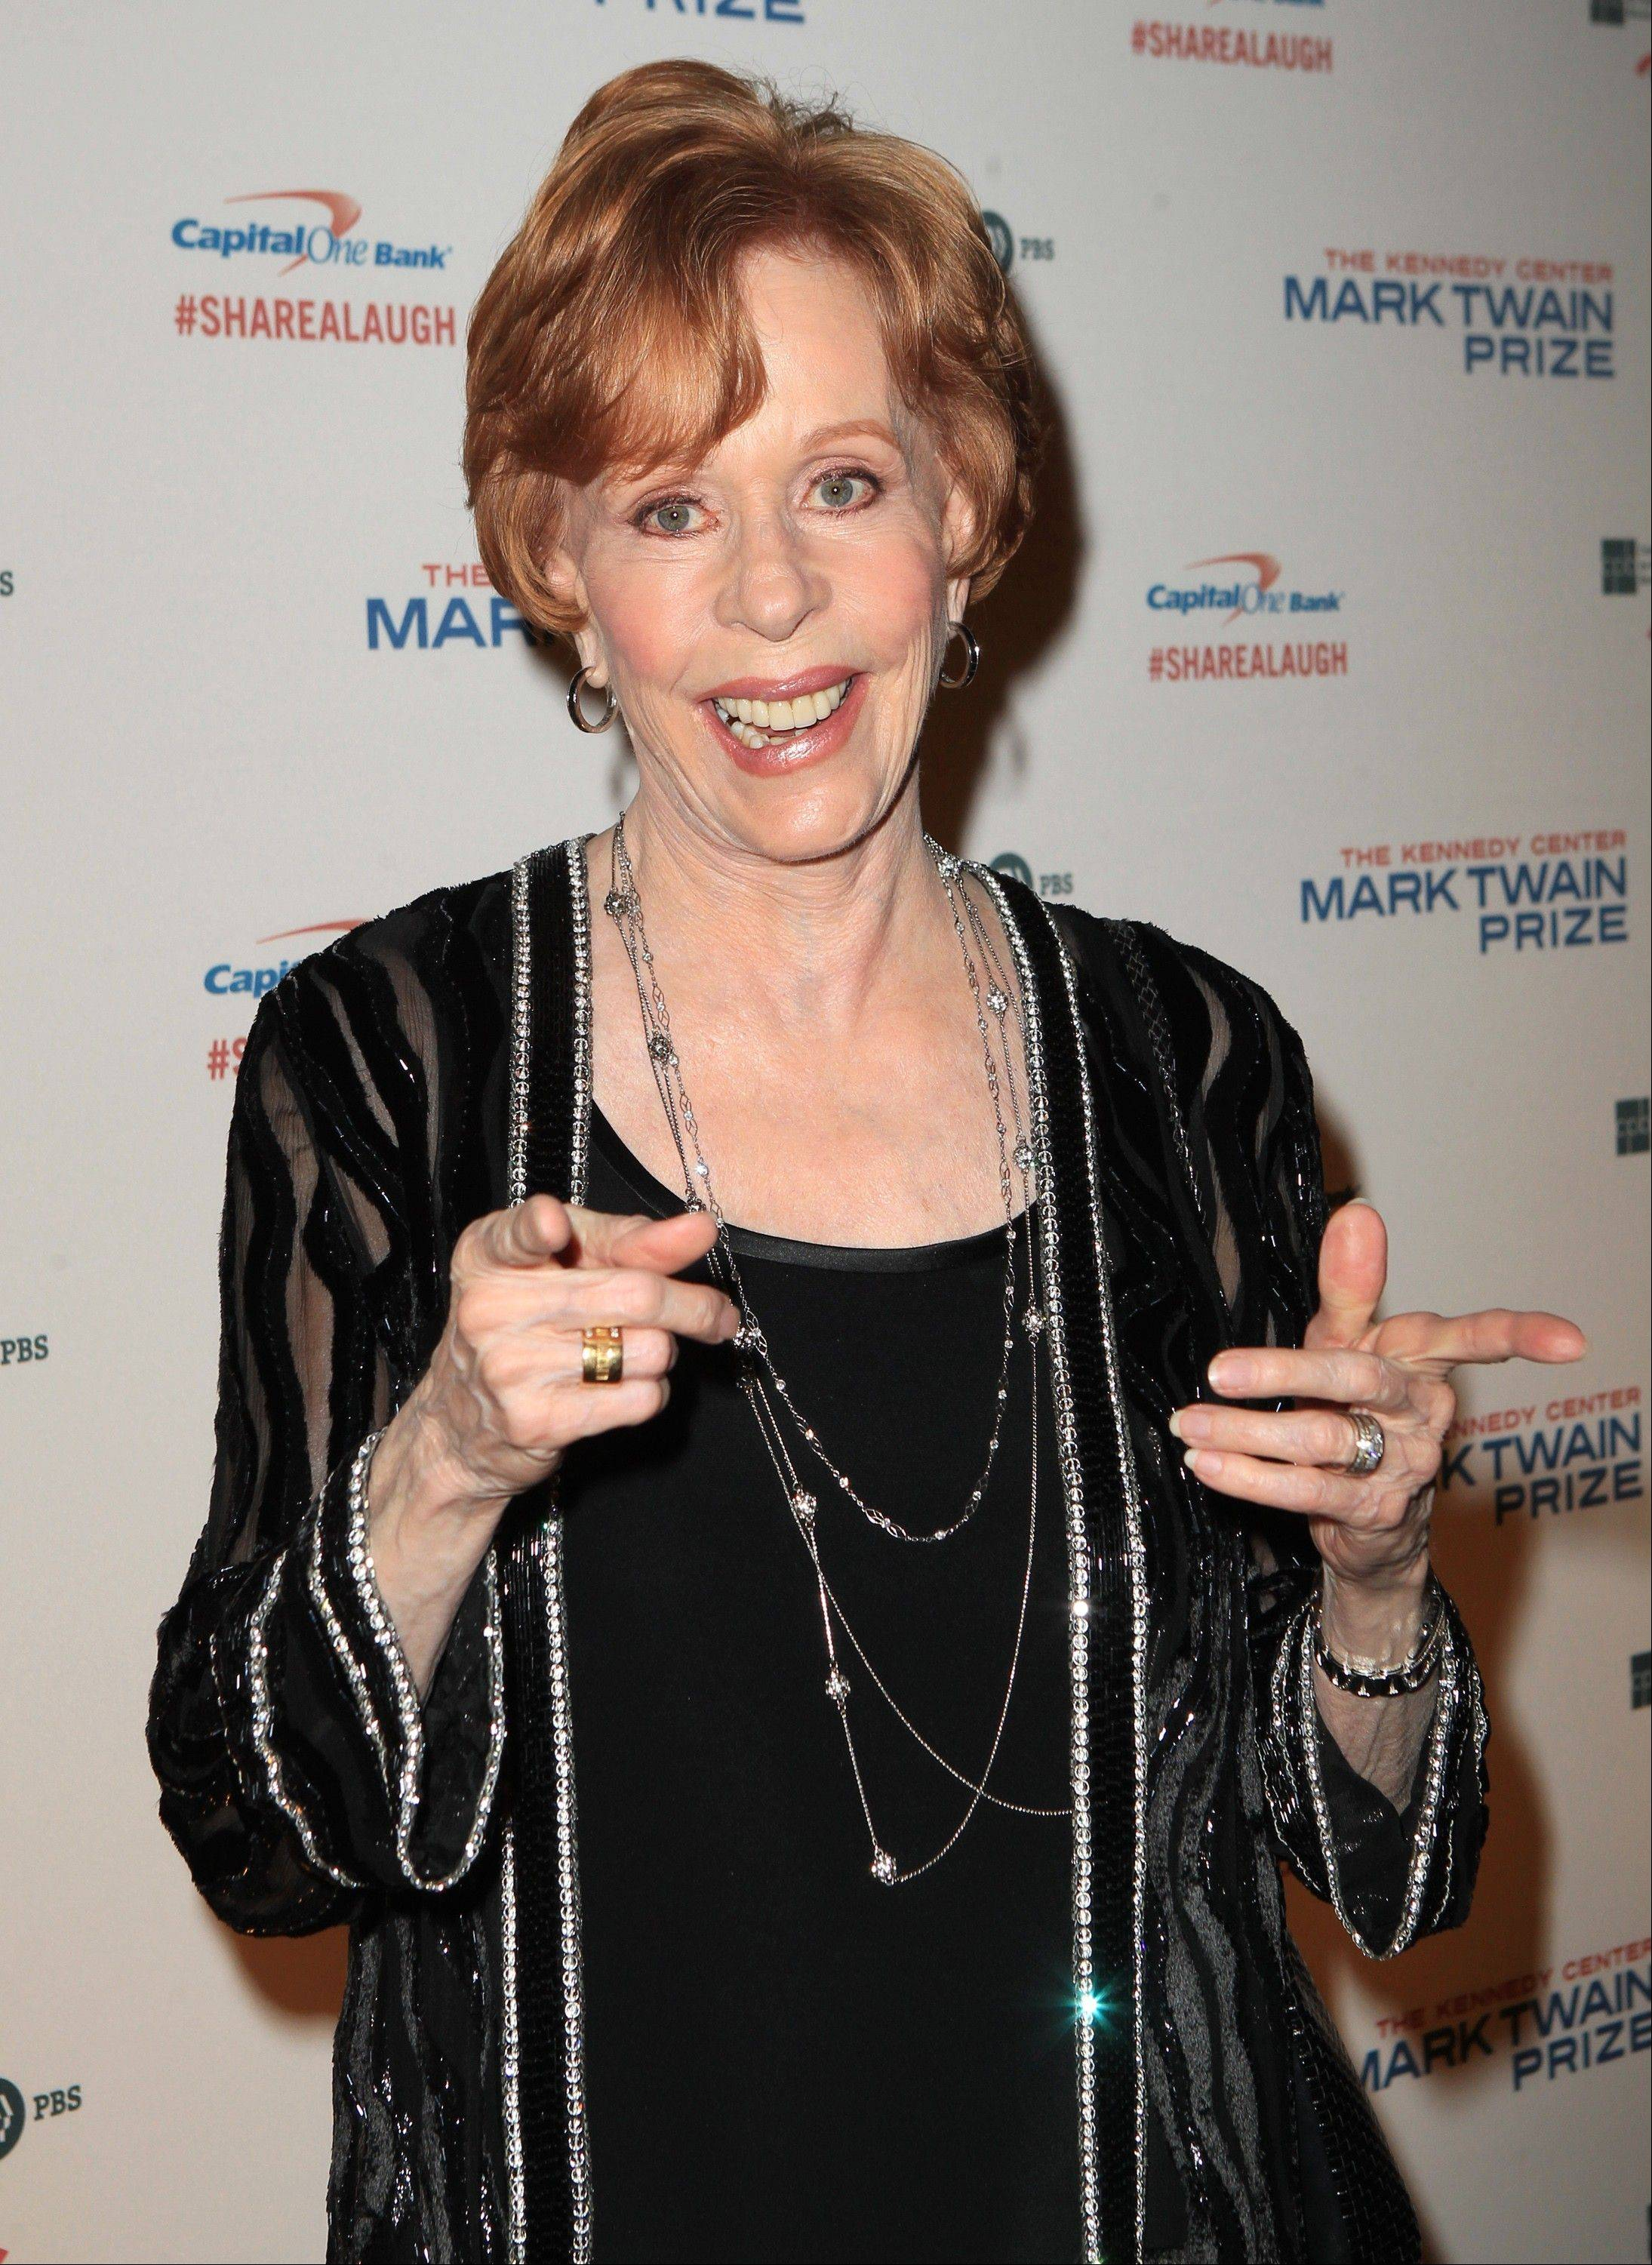 Carol Burnett received the Mark Twain Prize for American Humor Sunday at the Kennedy Center in Washington, D.C.